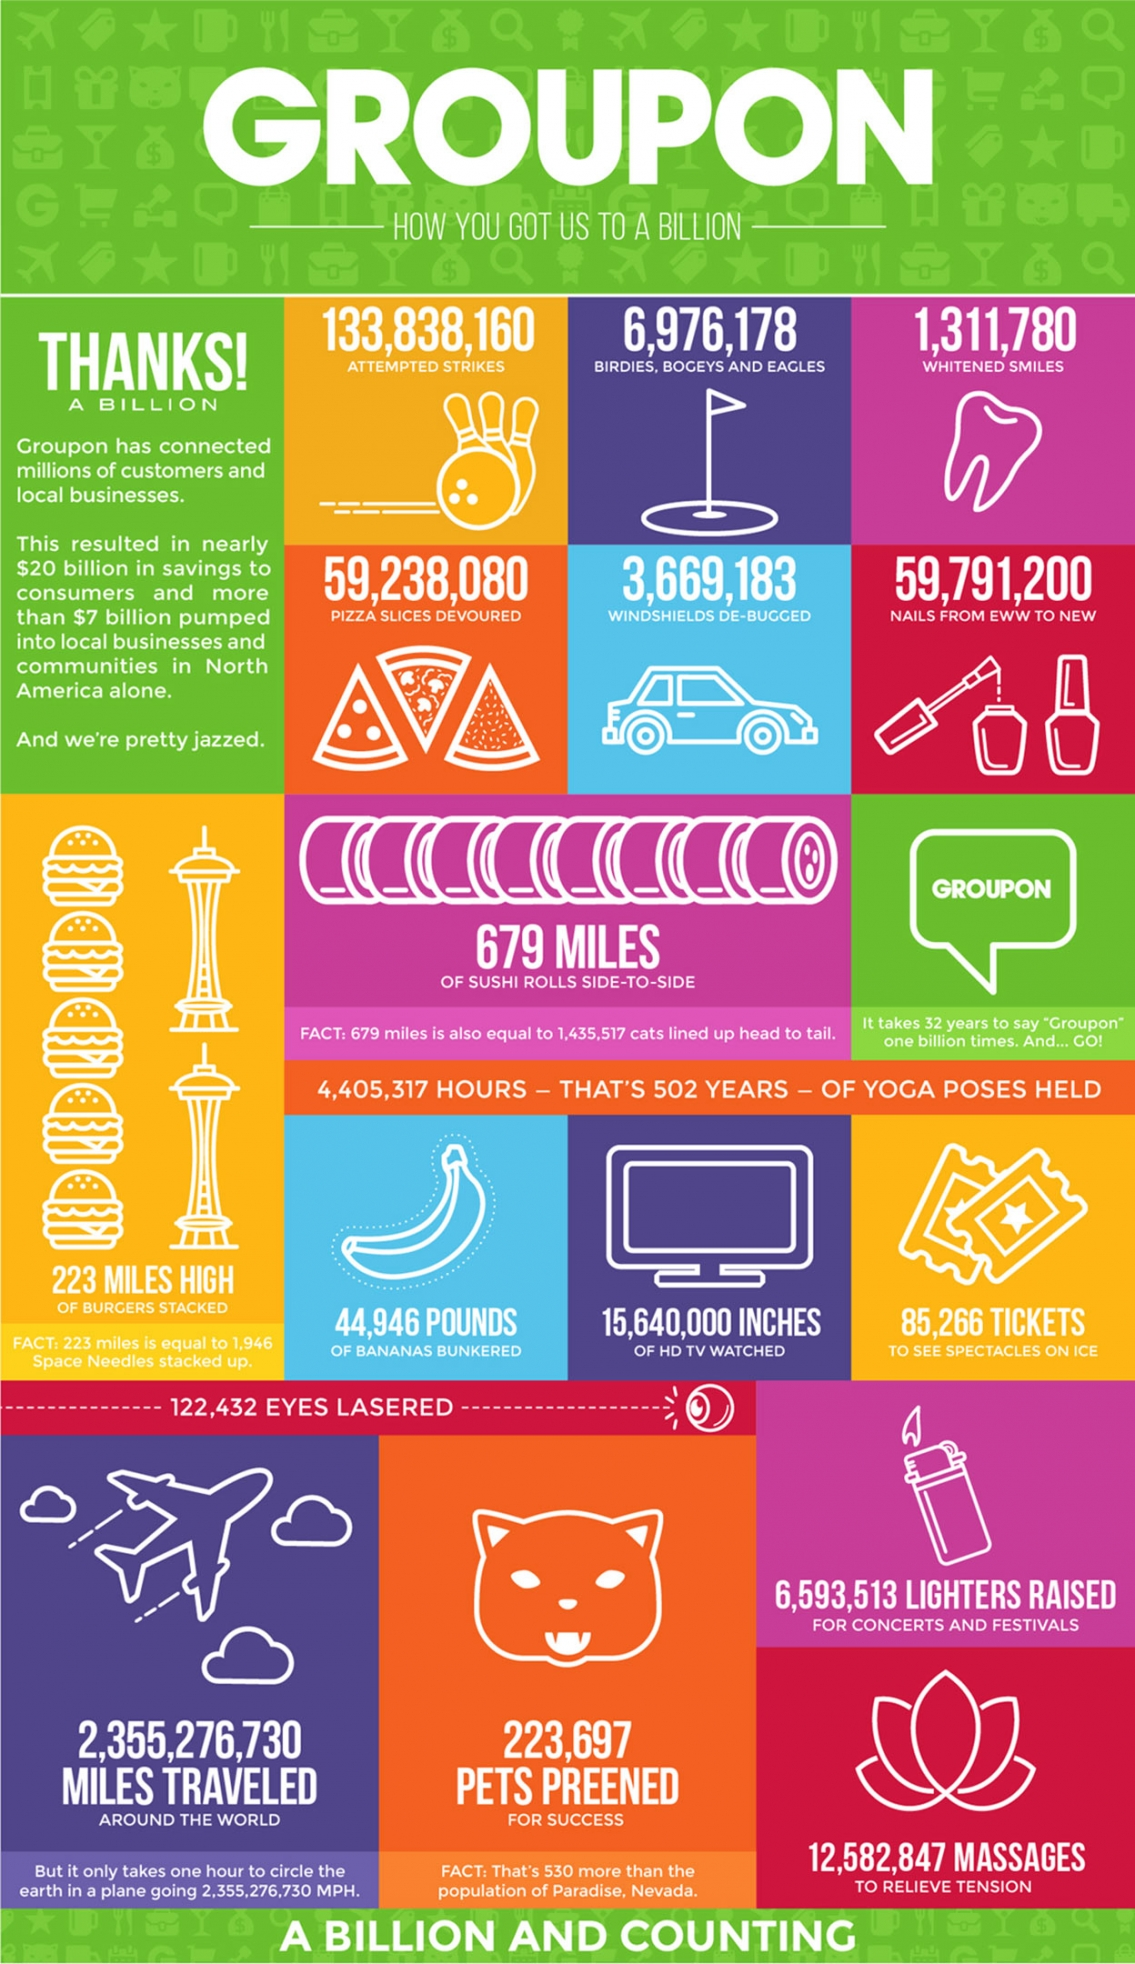 Groupon How You Got Us To A Billion - eCommerce Infographic